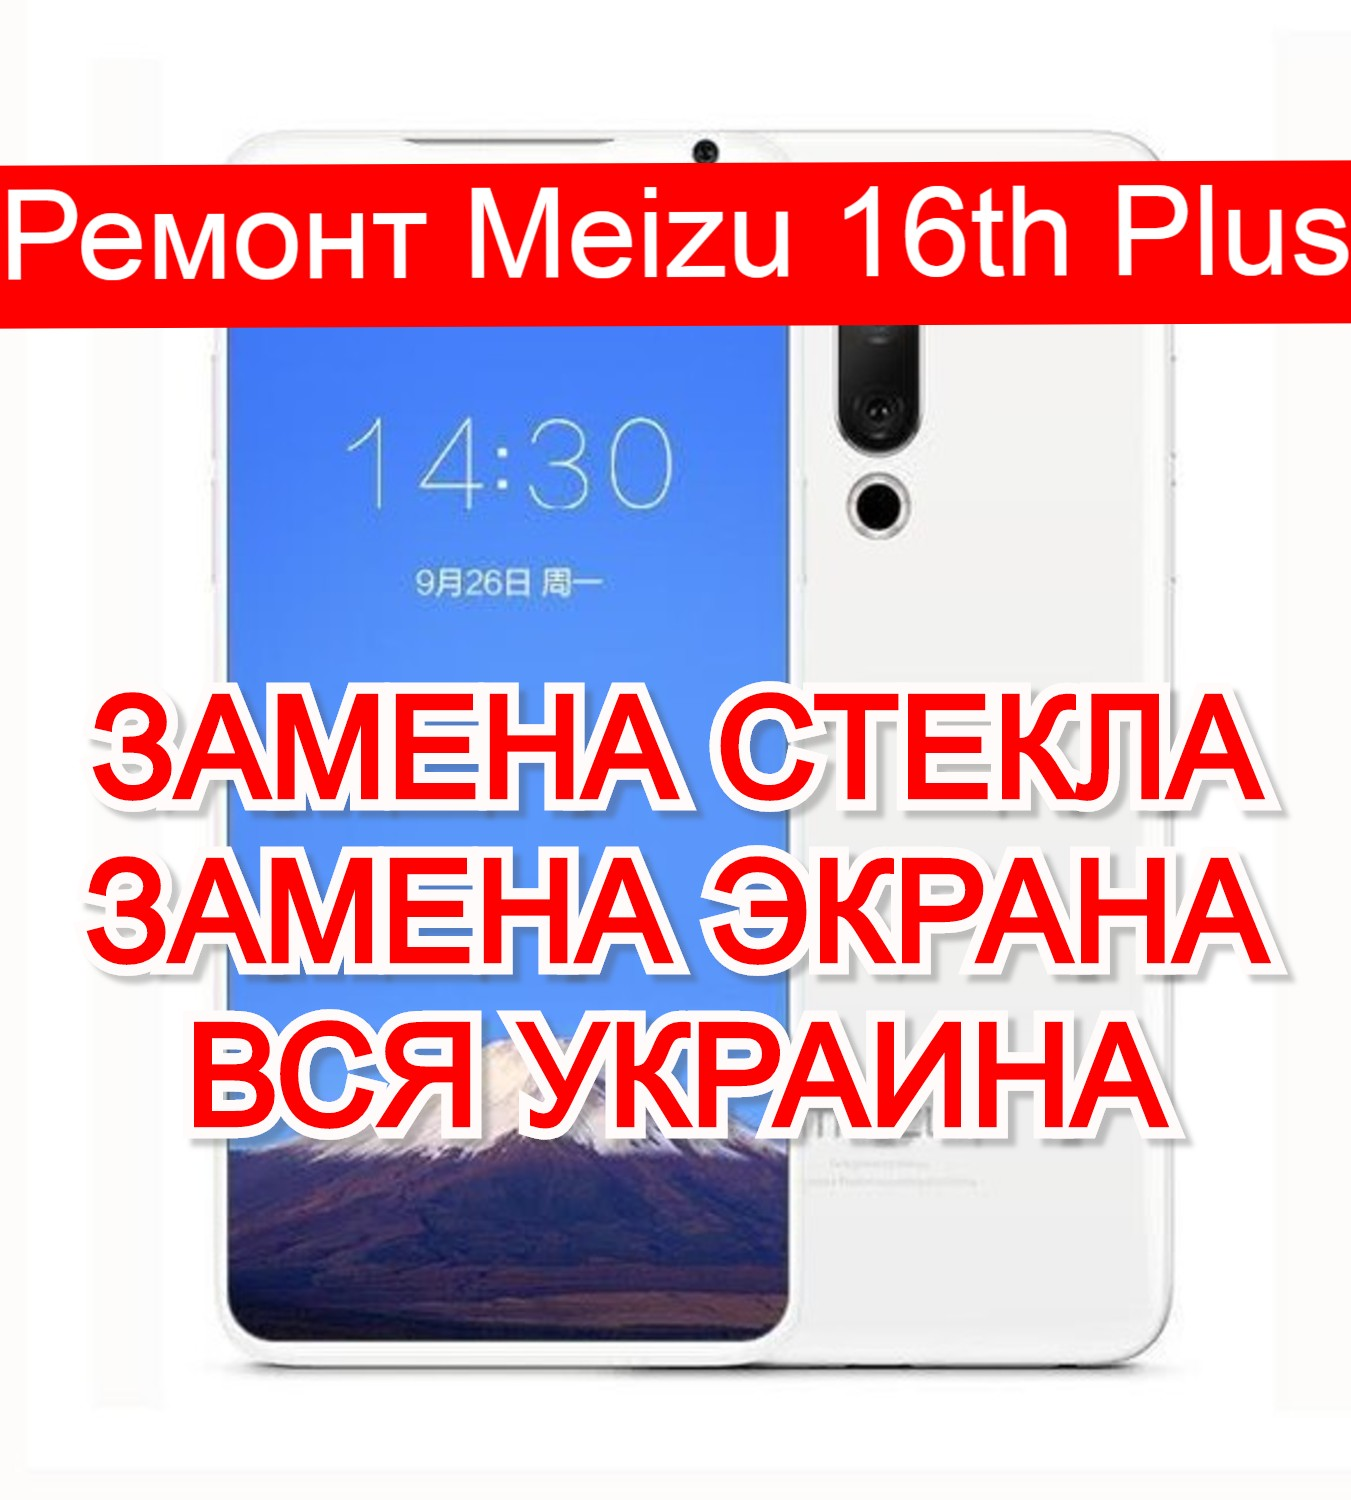 Ремонт Meizu 16th Plus замена стекла и экрана